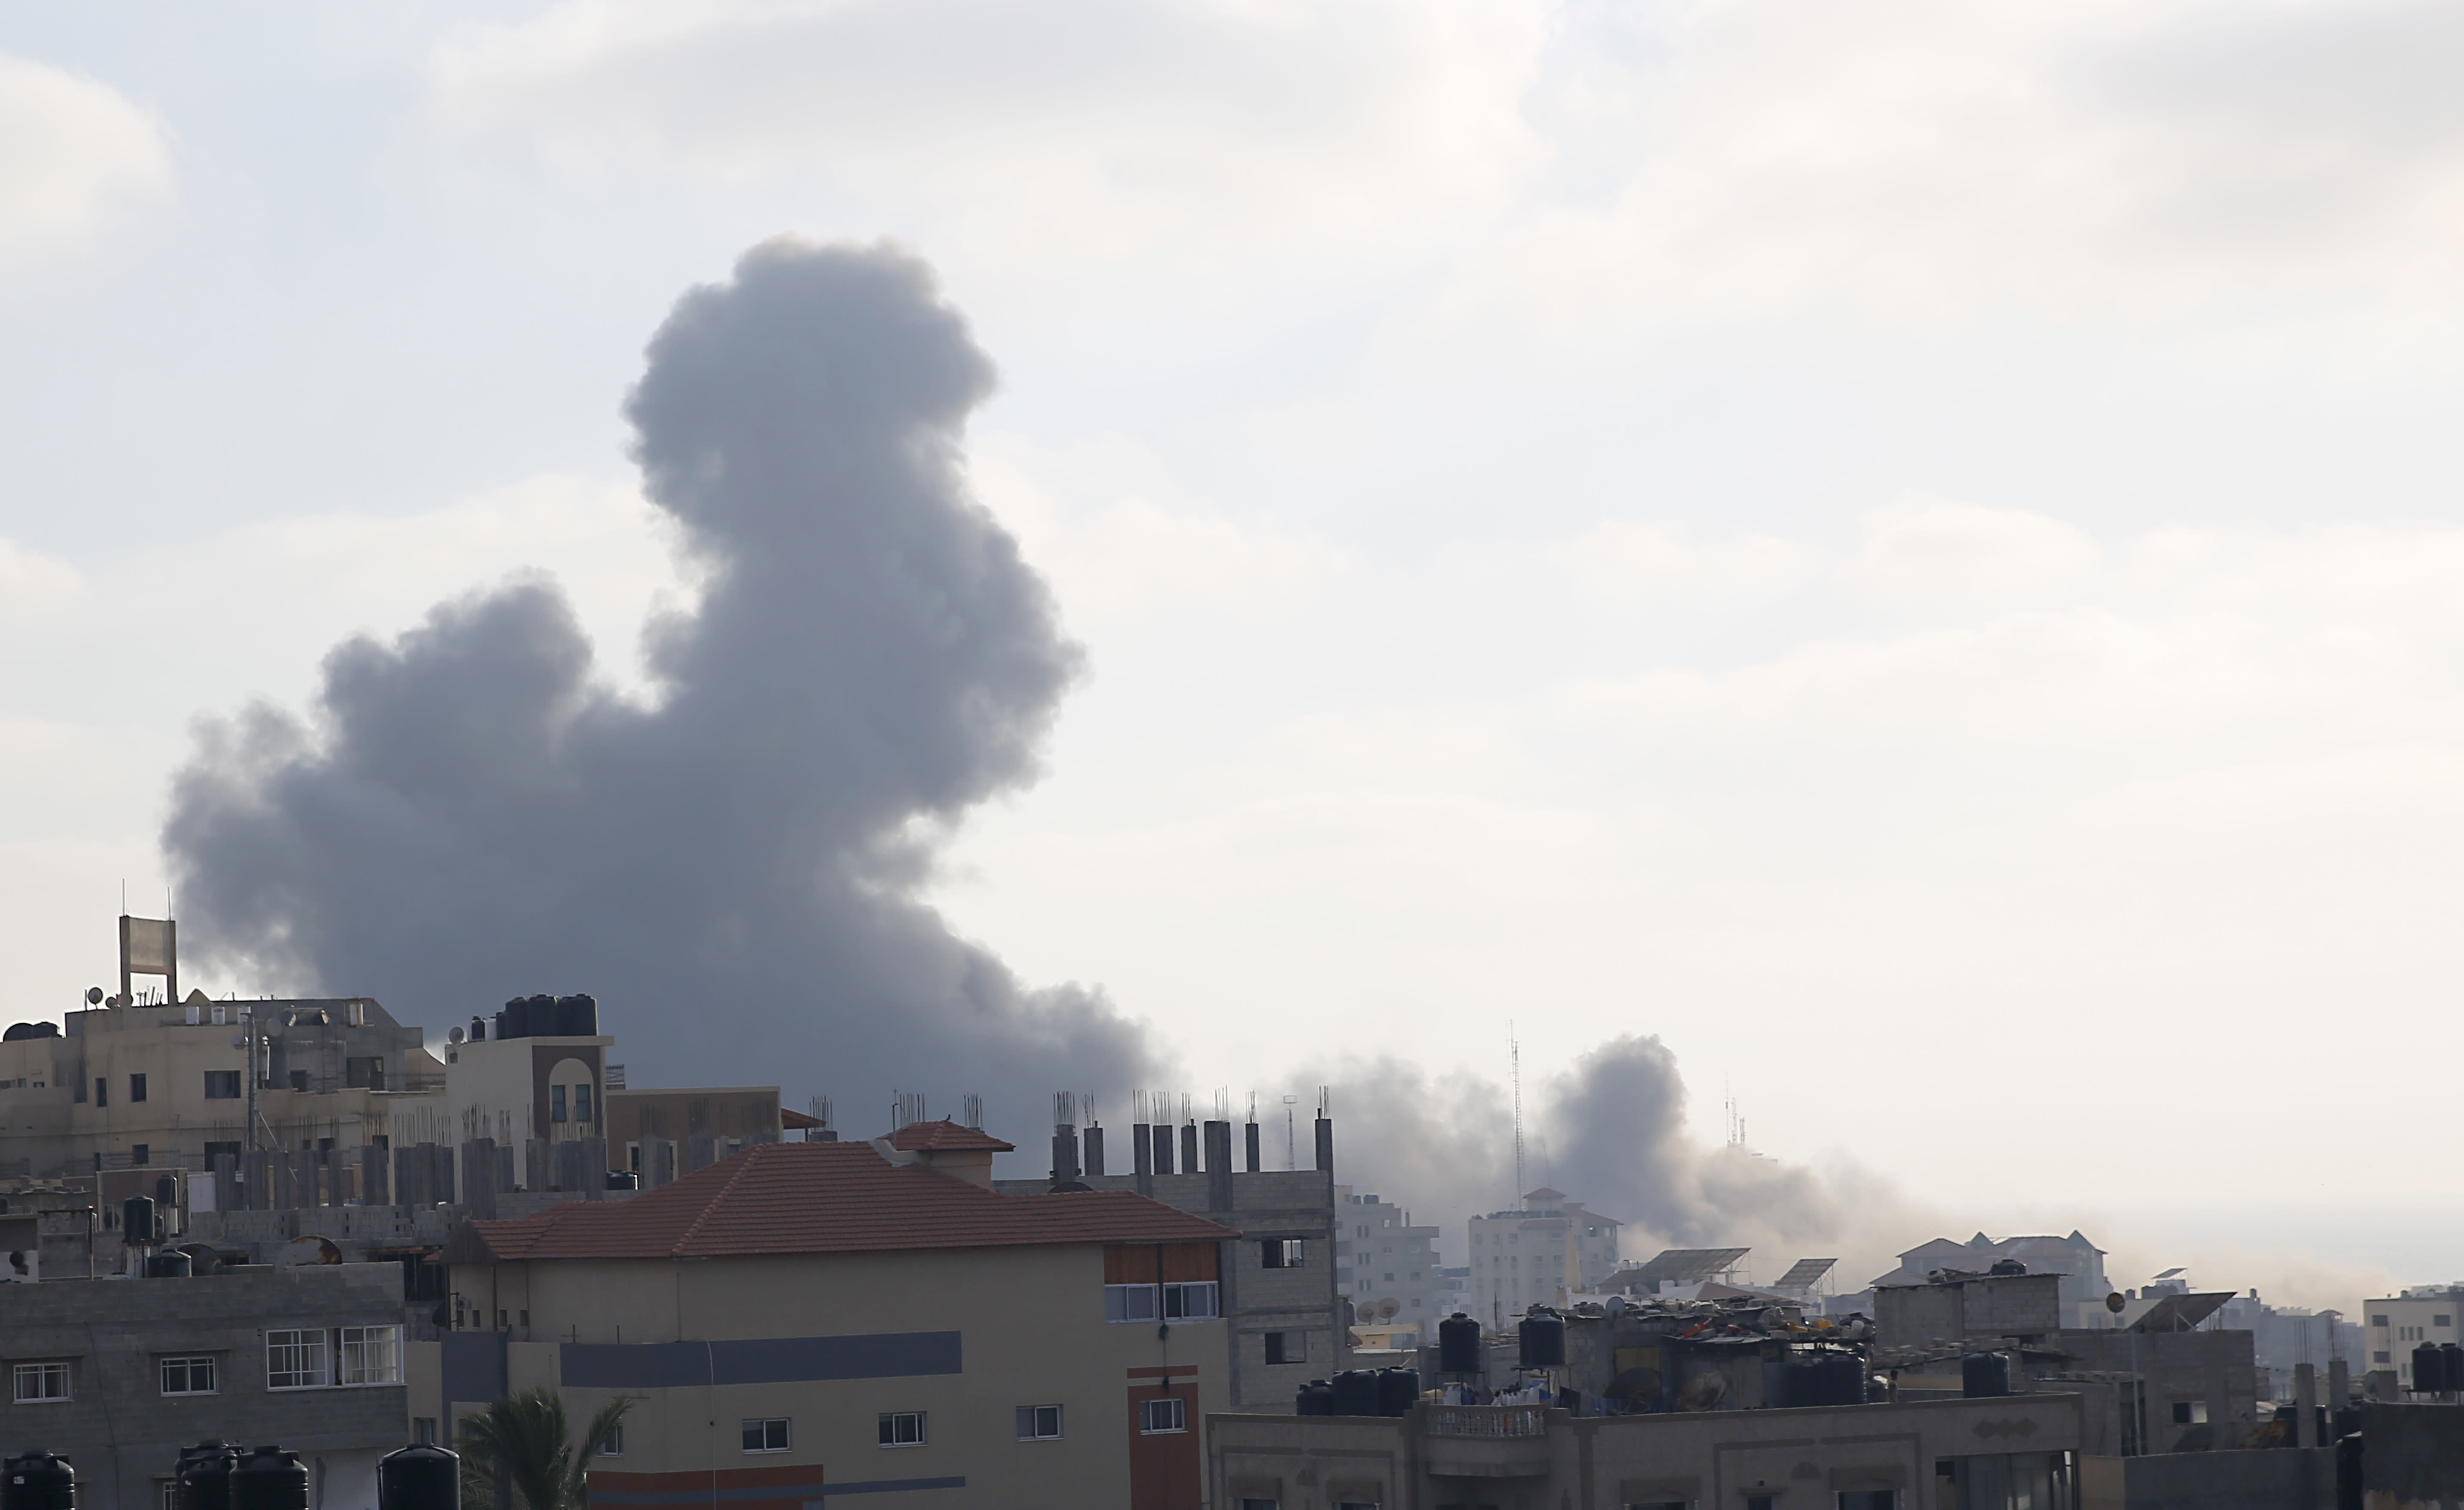 Smoke rises from an explosion caused by an Israeli airstrike in Gaza City, Thursday, Aug. 9, 2018. Israeli warplanes have hit dozens of targets in the Gaza Strip, while Palestinian militants fired scores of rockets into Israel in a fierce burst of violence overnight that came as Egypt was trying to broker a long-term cease-fire between the sides. (AP Photo/Hatem Moussa)